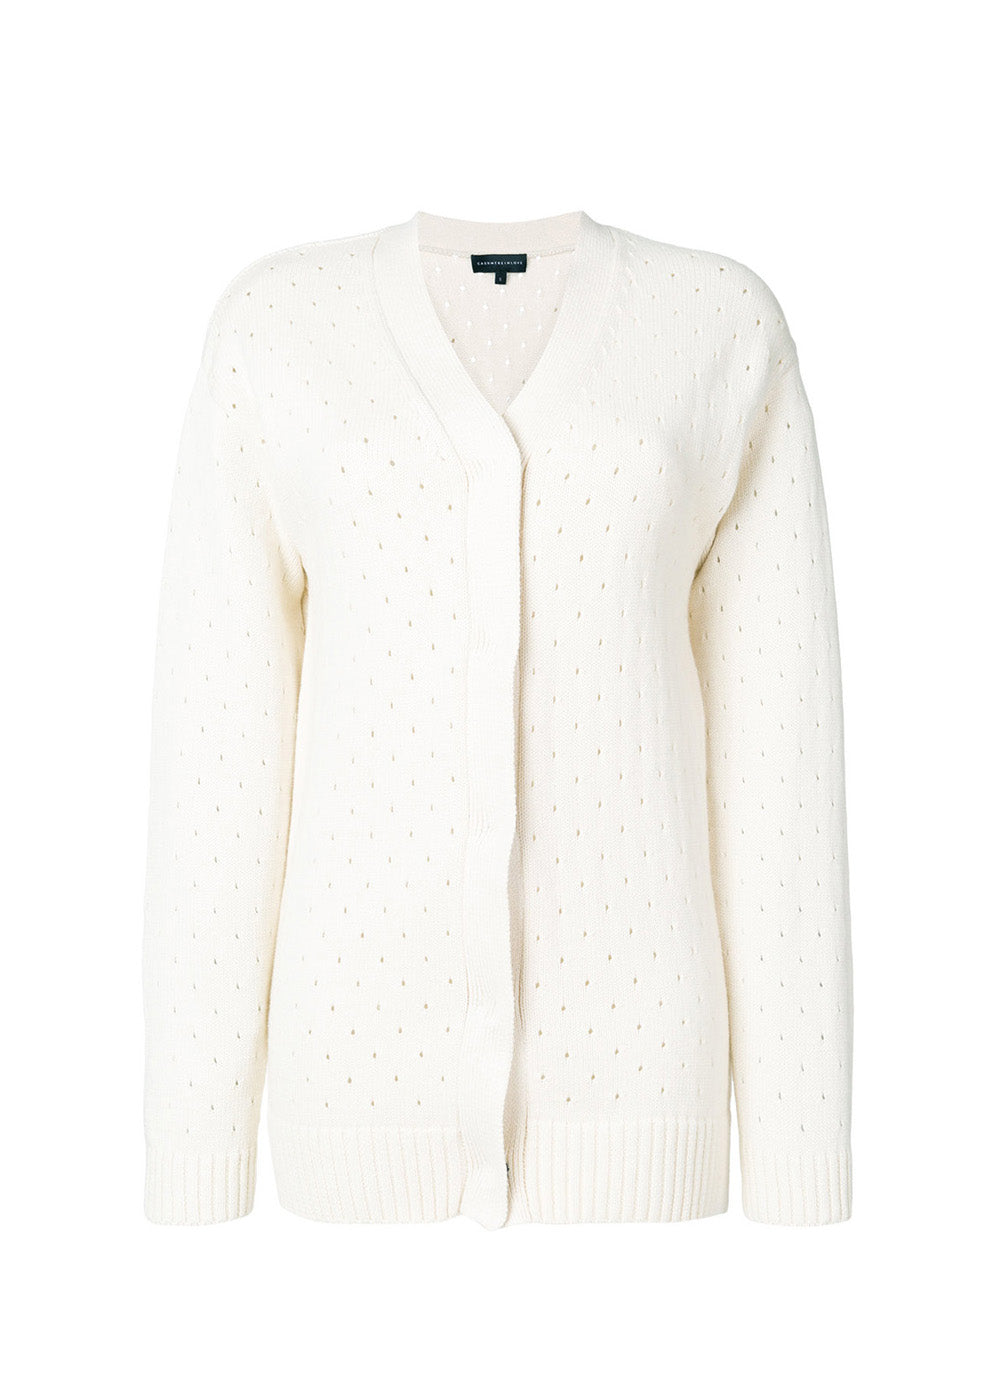 012d1fa32 OFF WHITE OVERSIZED CASHMERE CARDIGAN WITH PERFORATED PATTERN ...